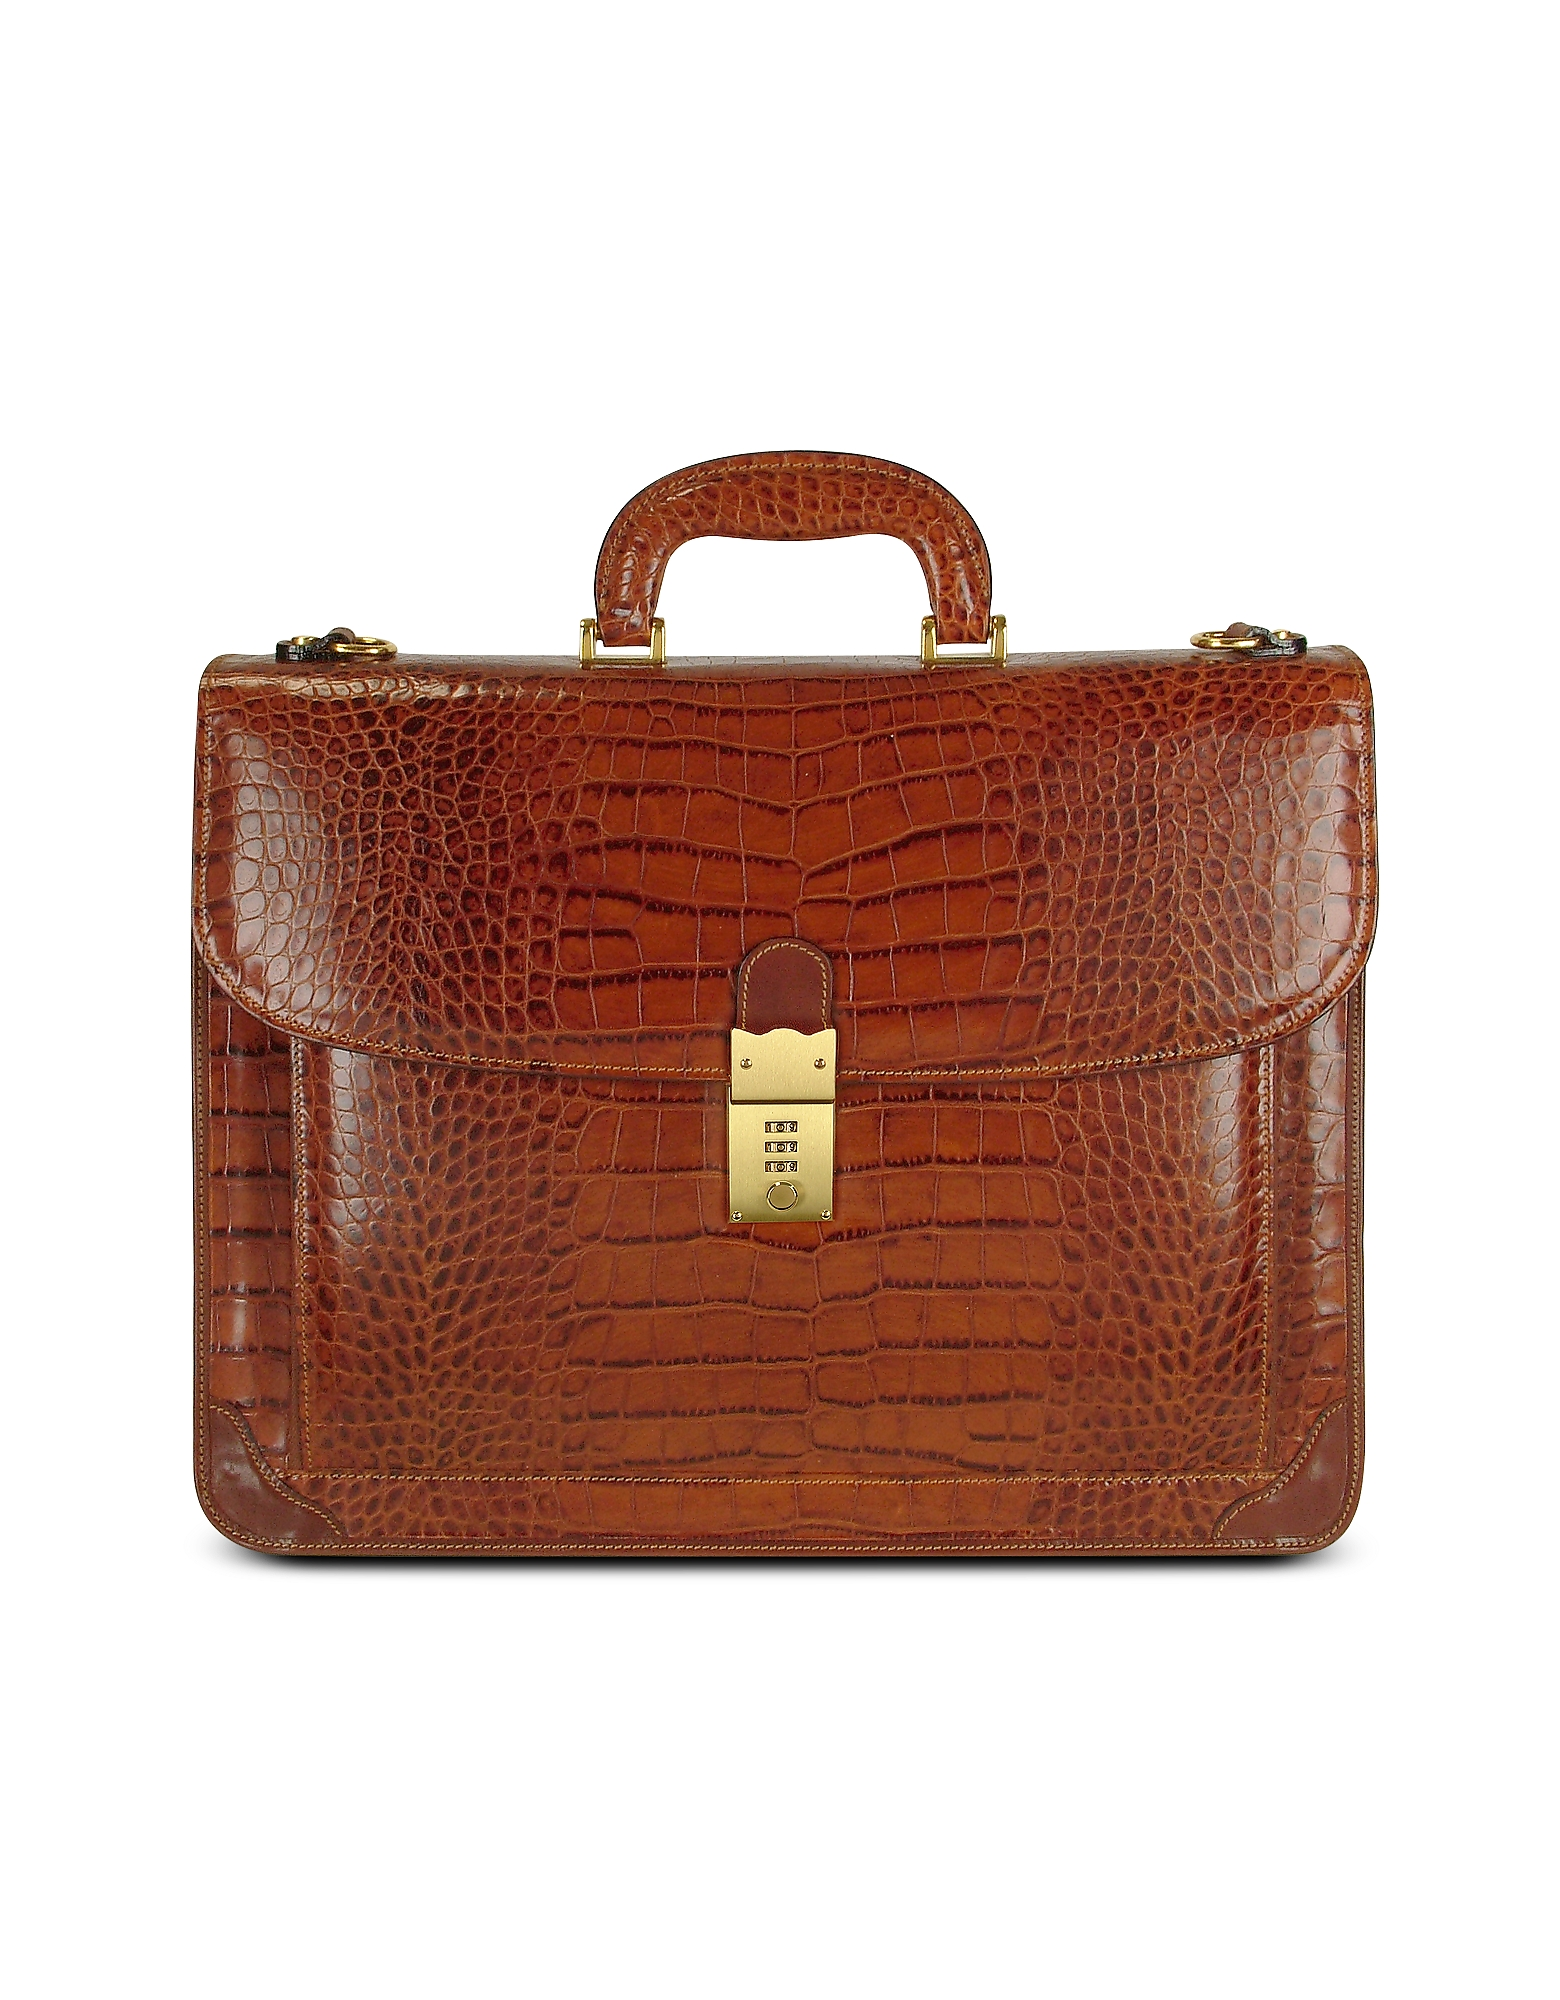 L.A.P.A. Briefcases, Men's Front Pocket Croco Stamped Italian Leather Briefcase